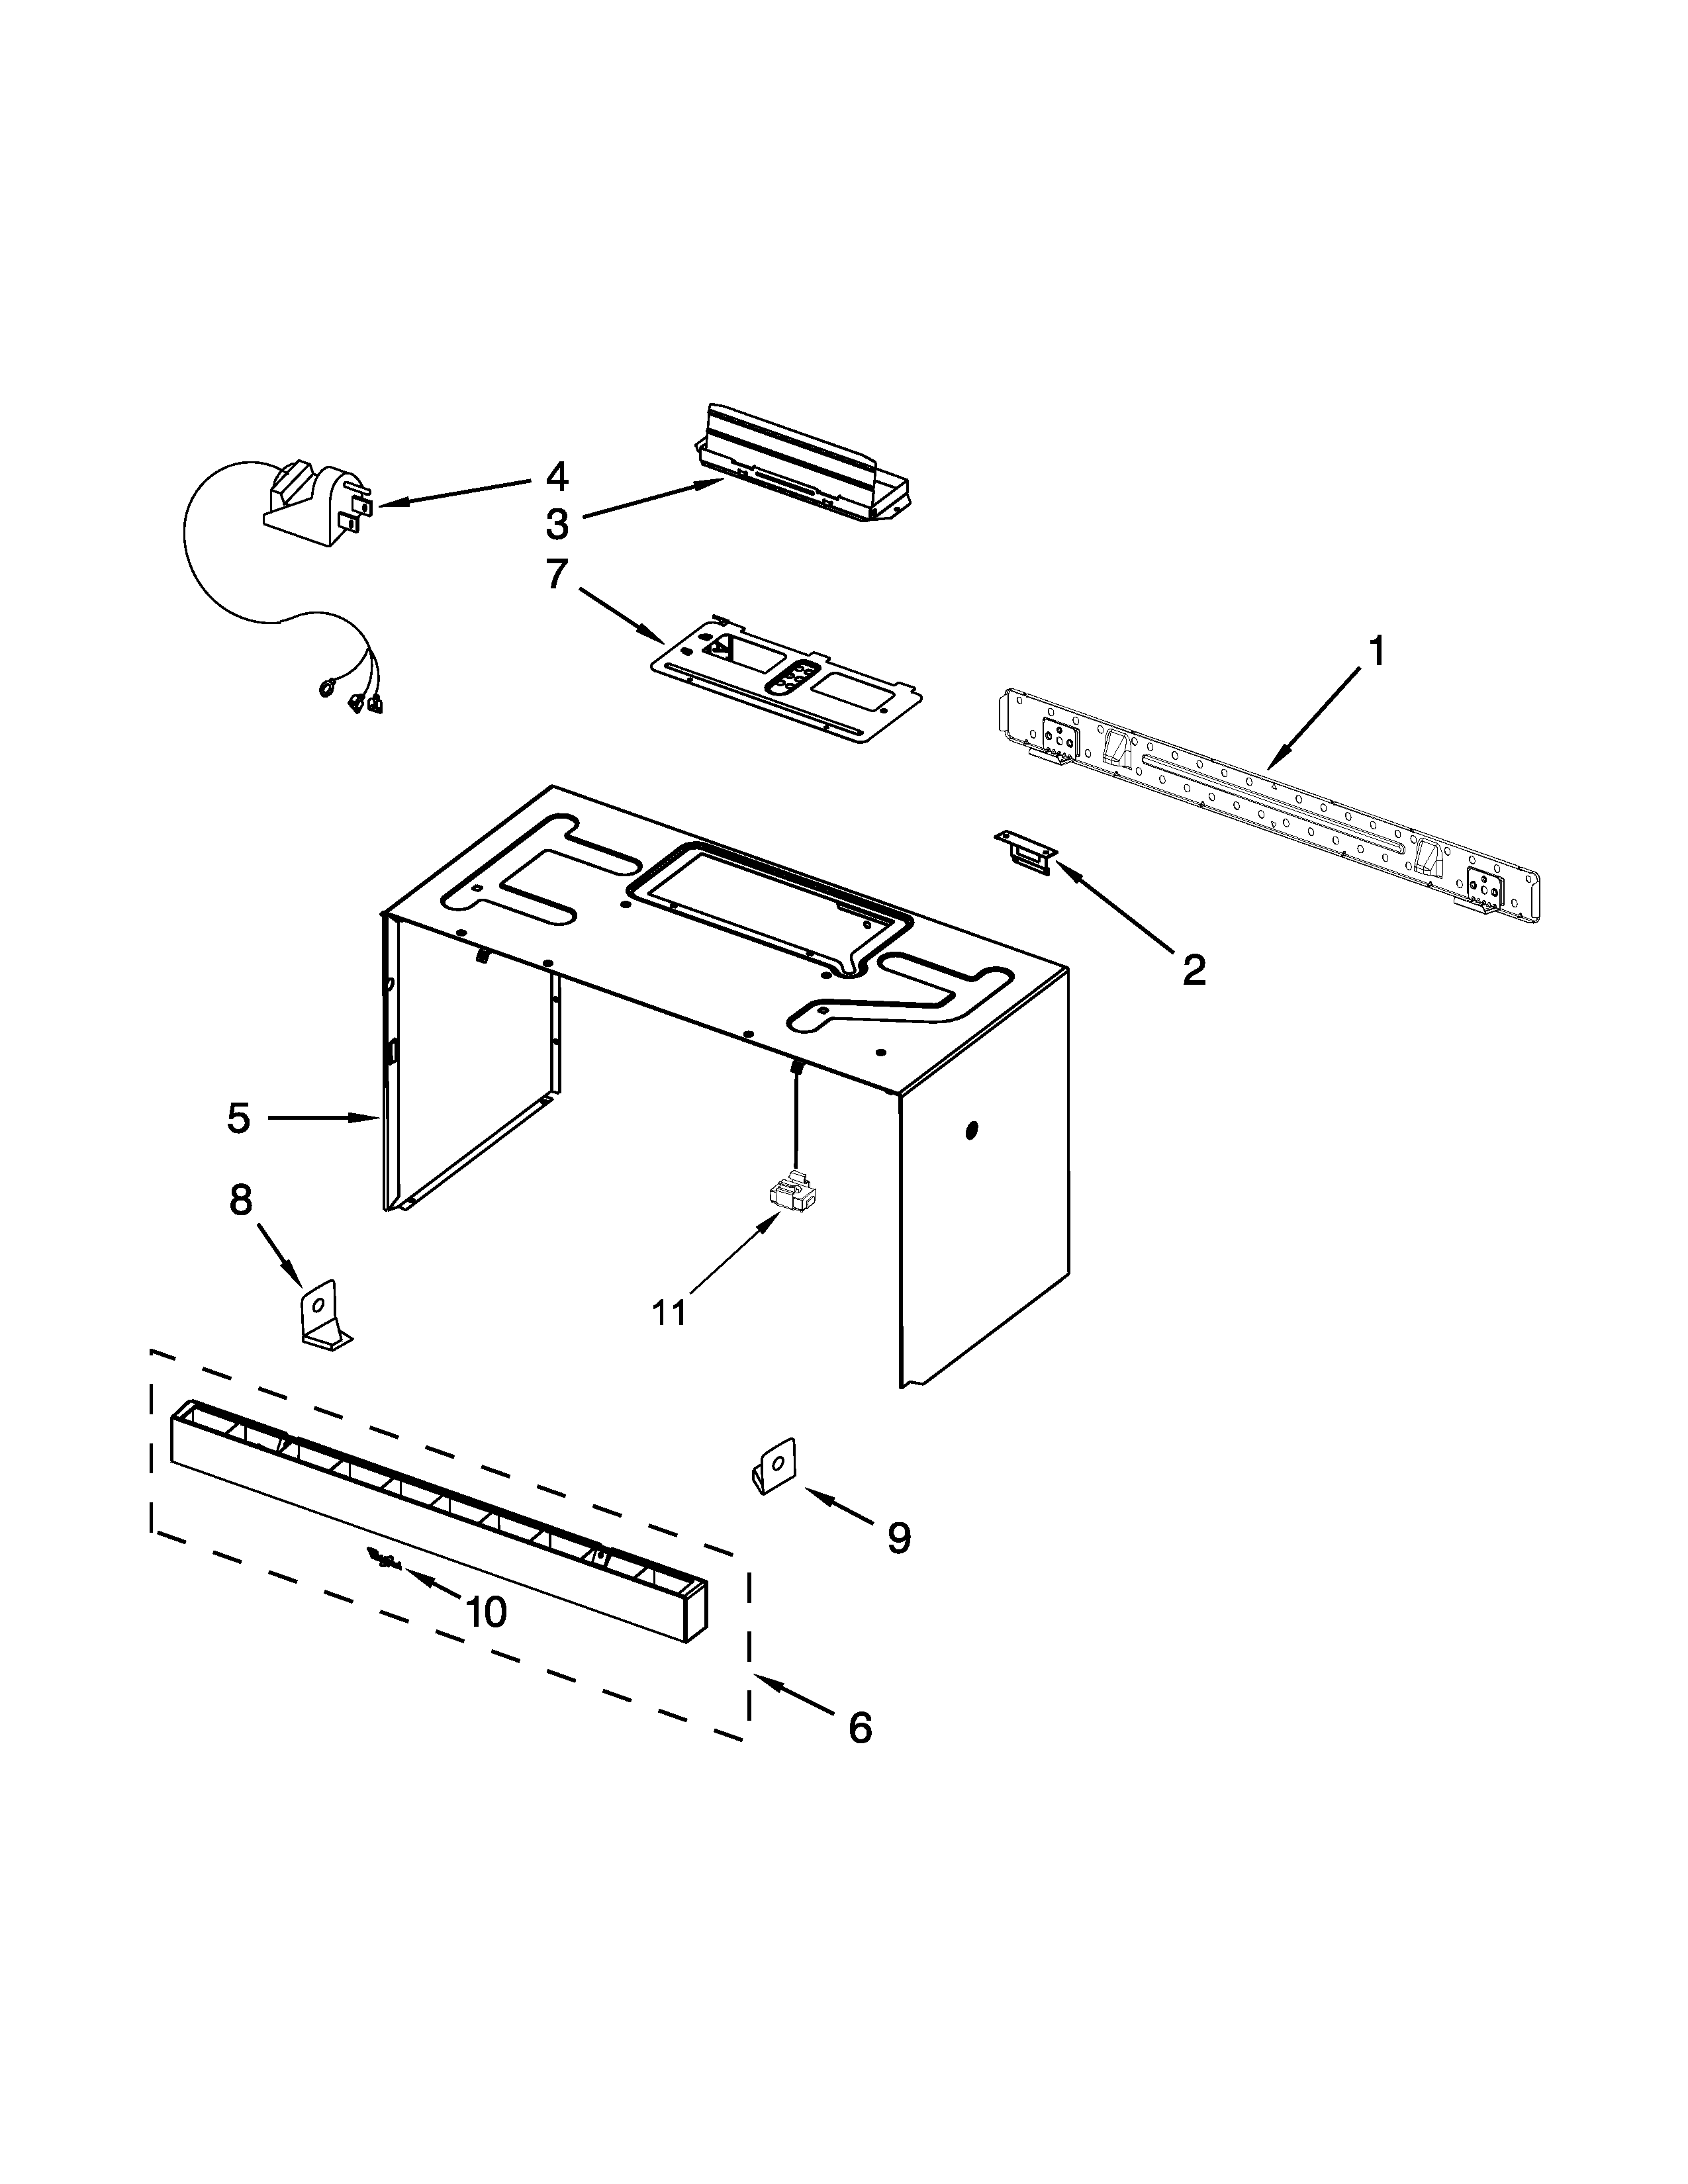 CABINET AND INSTALLATION PARTS Diagram & Parts List for